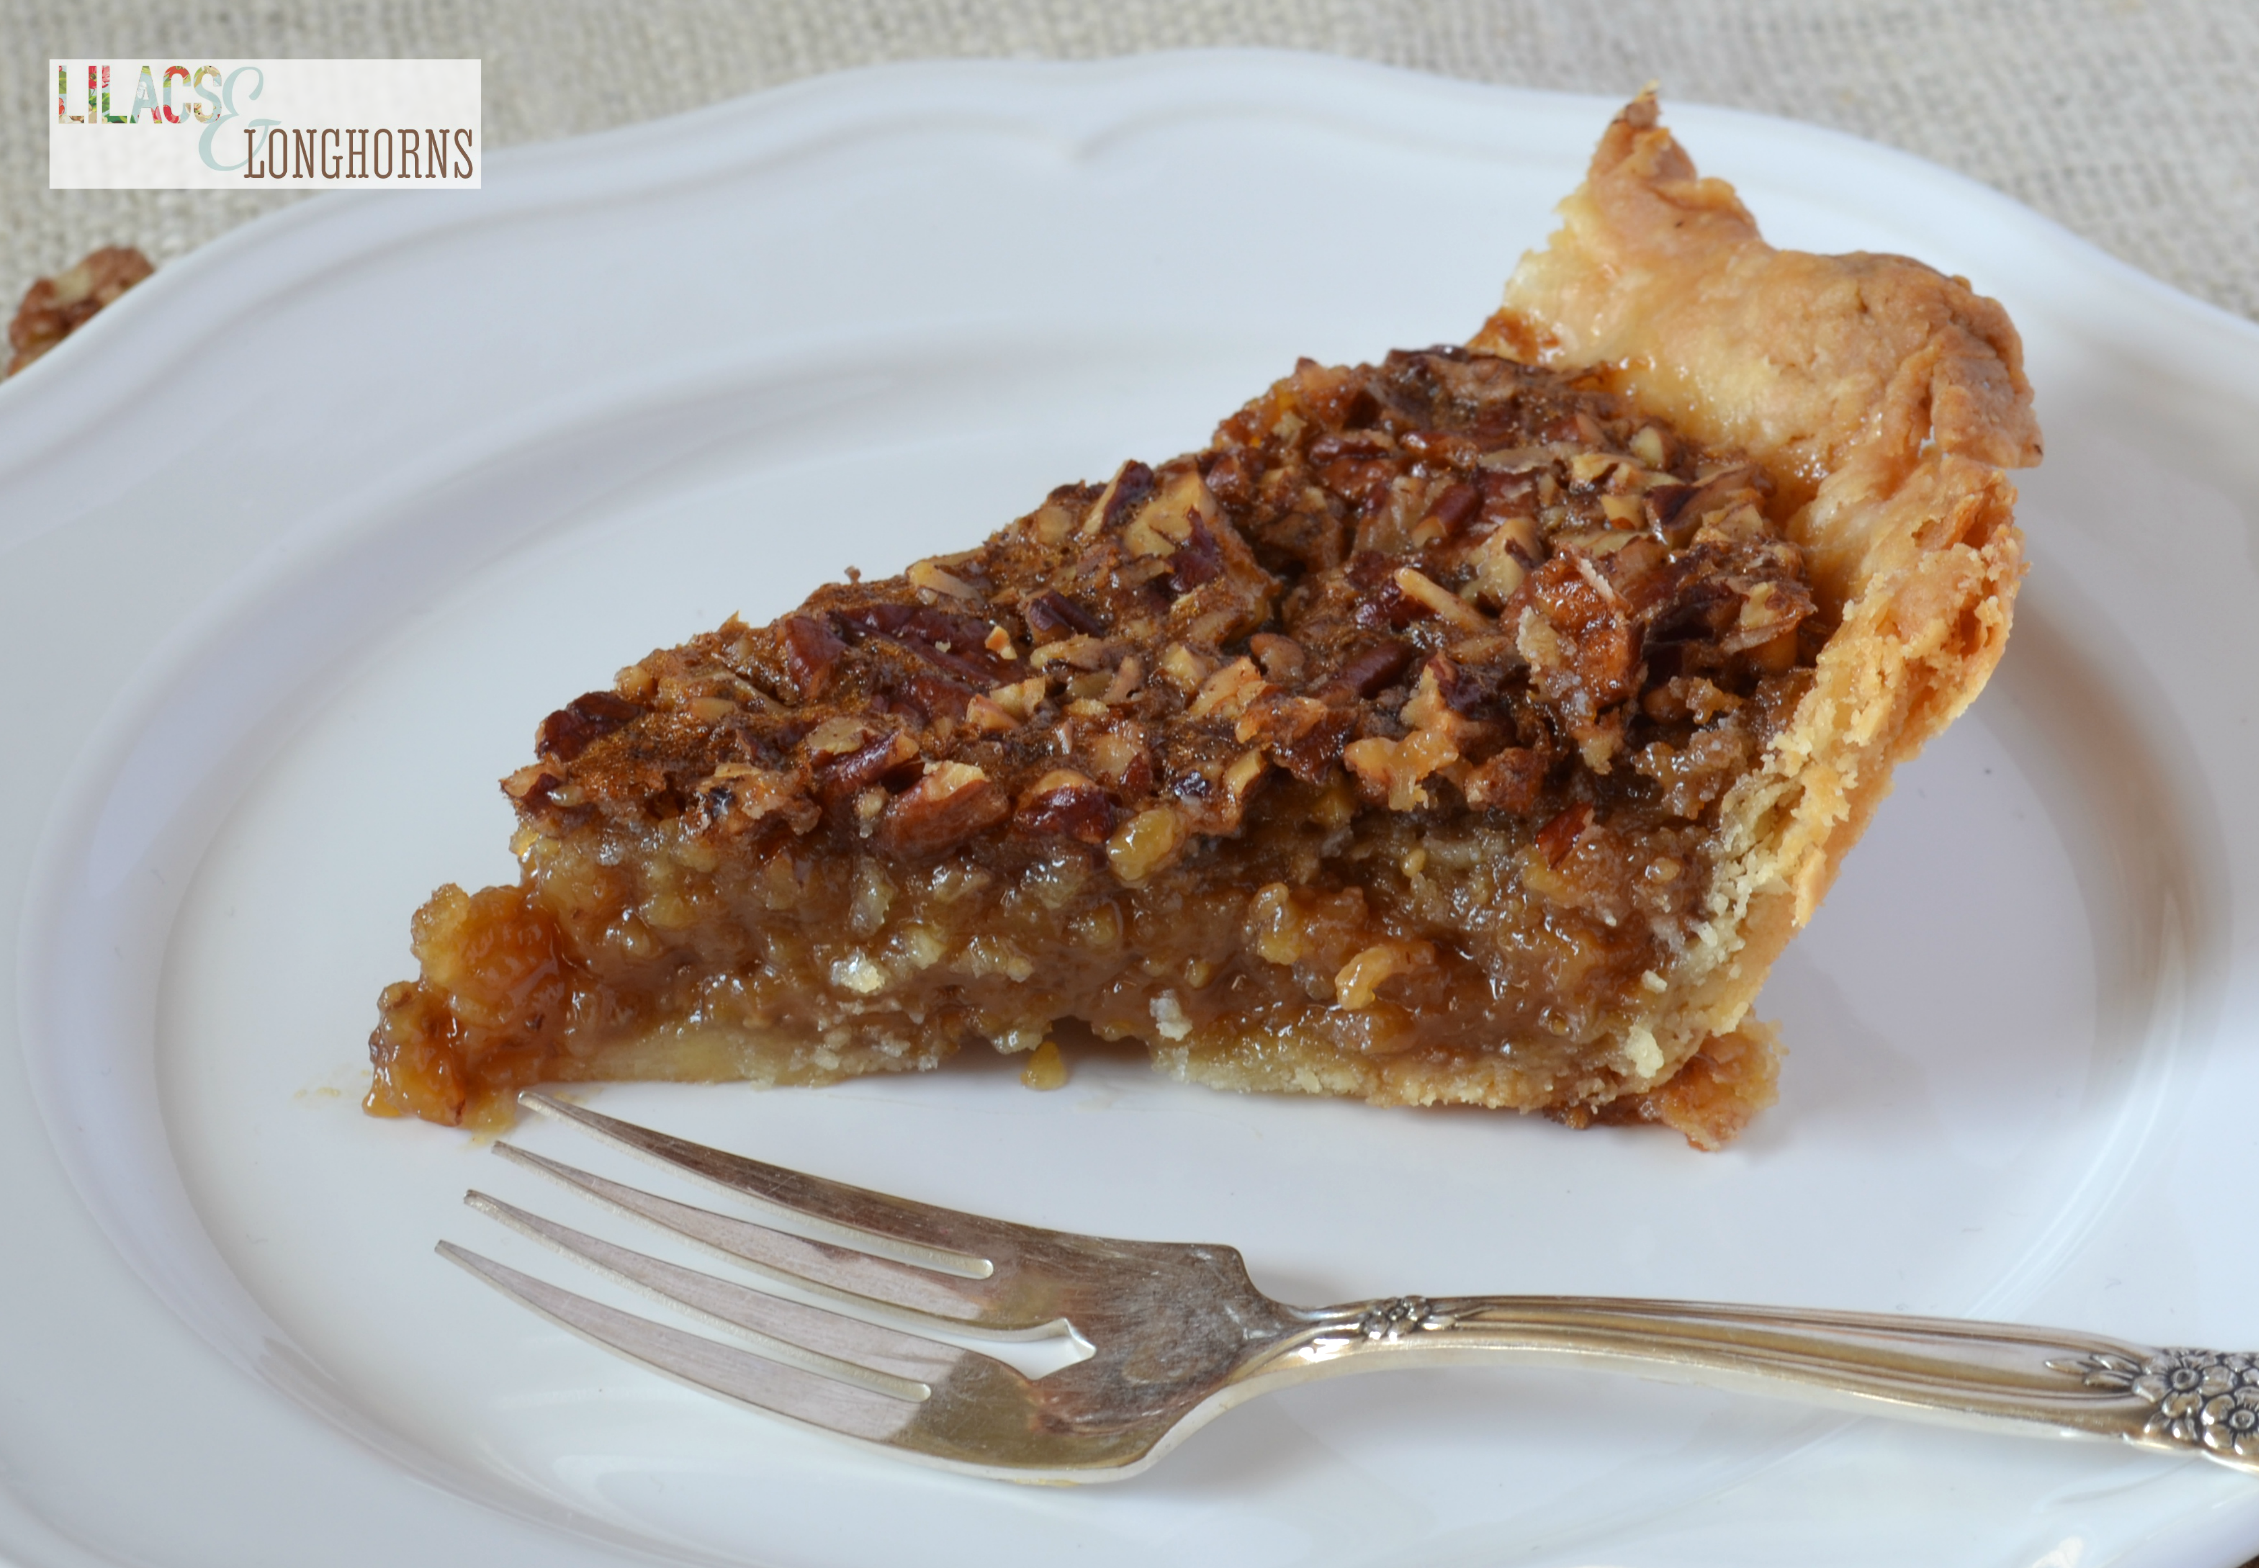 Rich and Delicious Pecan Pie RecipeLilacs and Longhorns